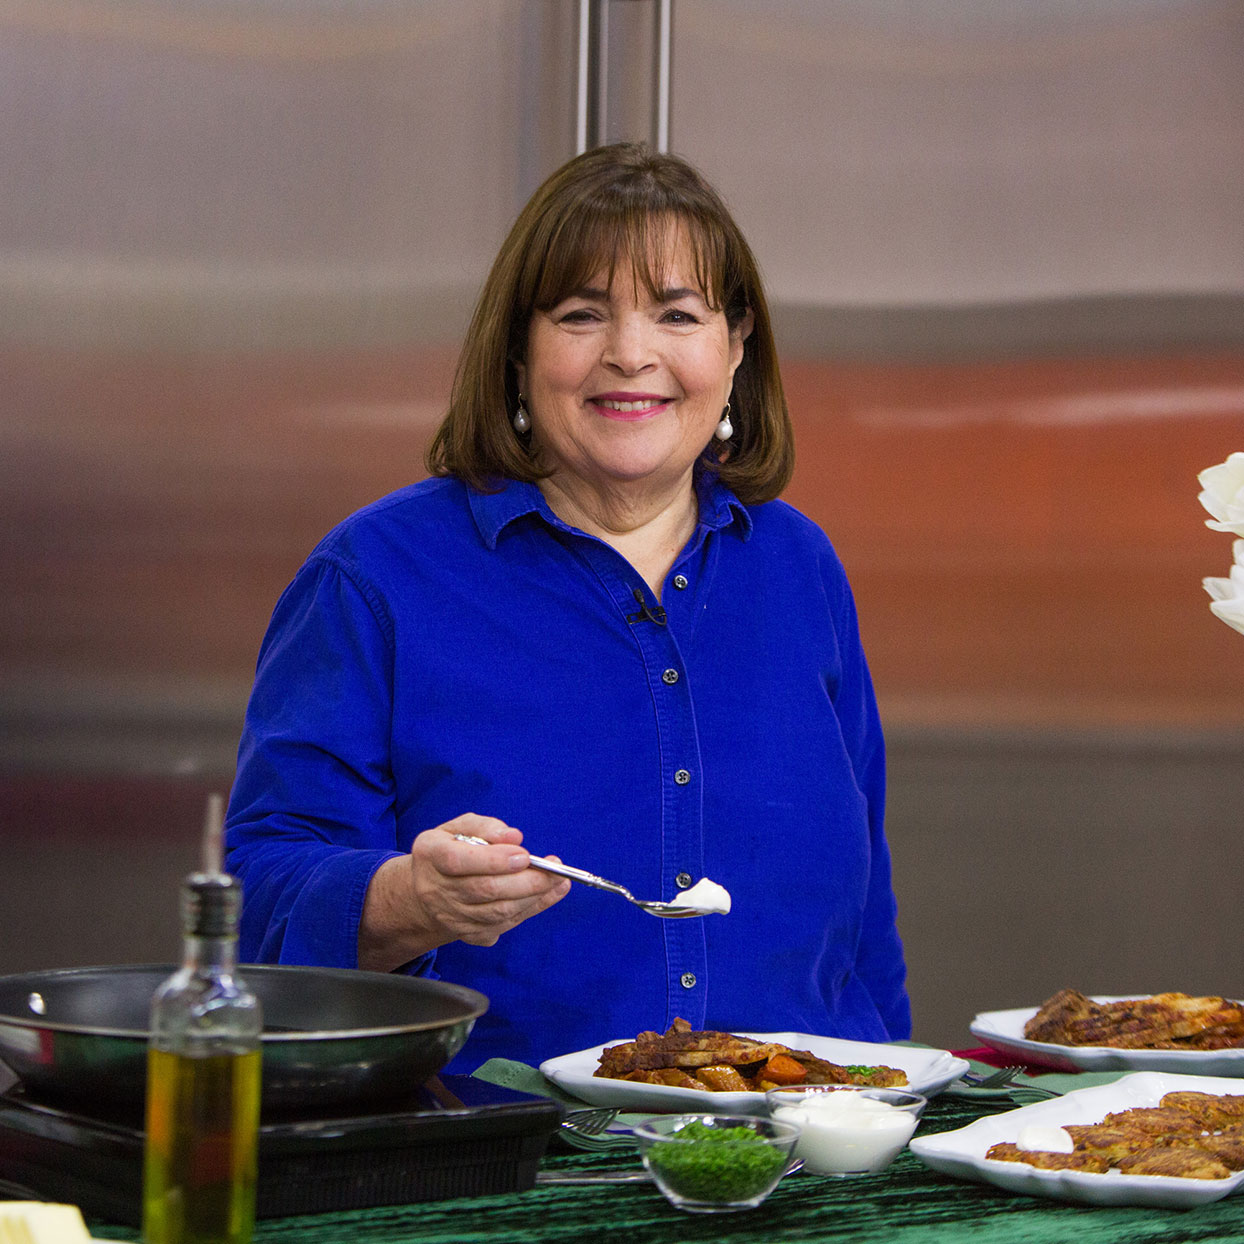 The Barefoot Contessa Is Returning to TV, Just in Time for the Holidays